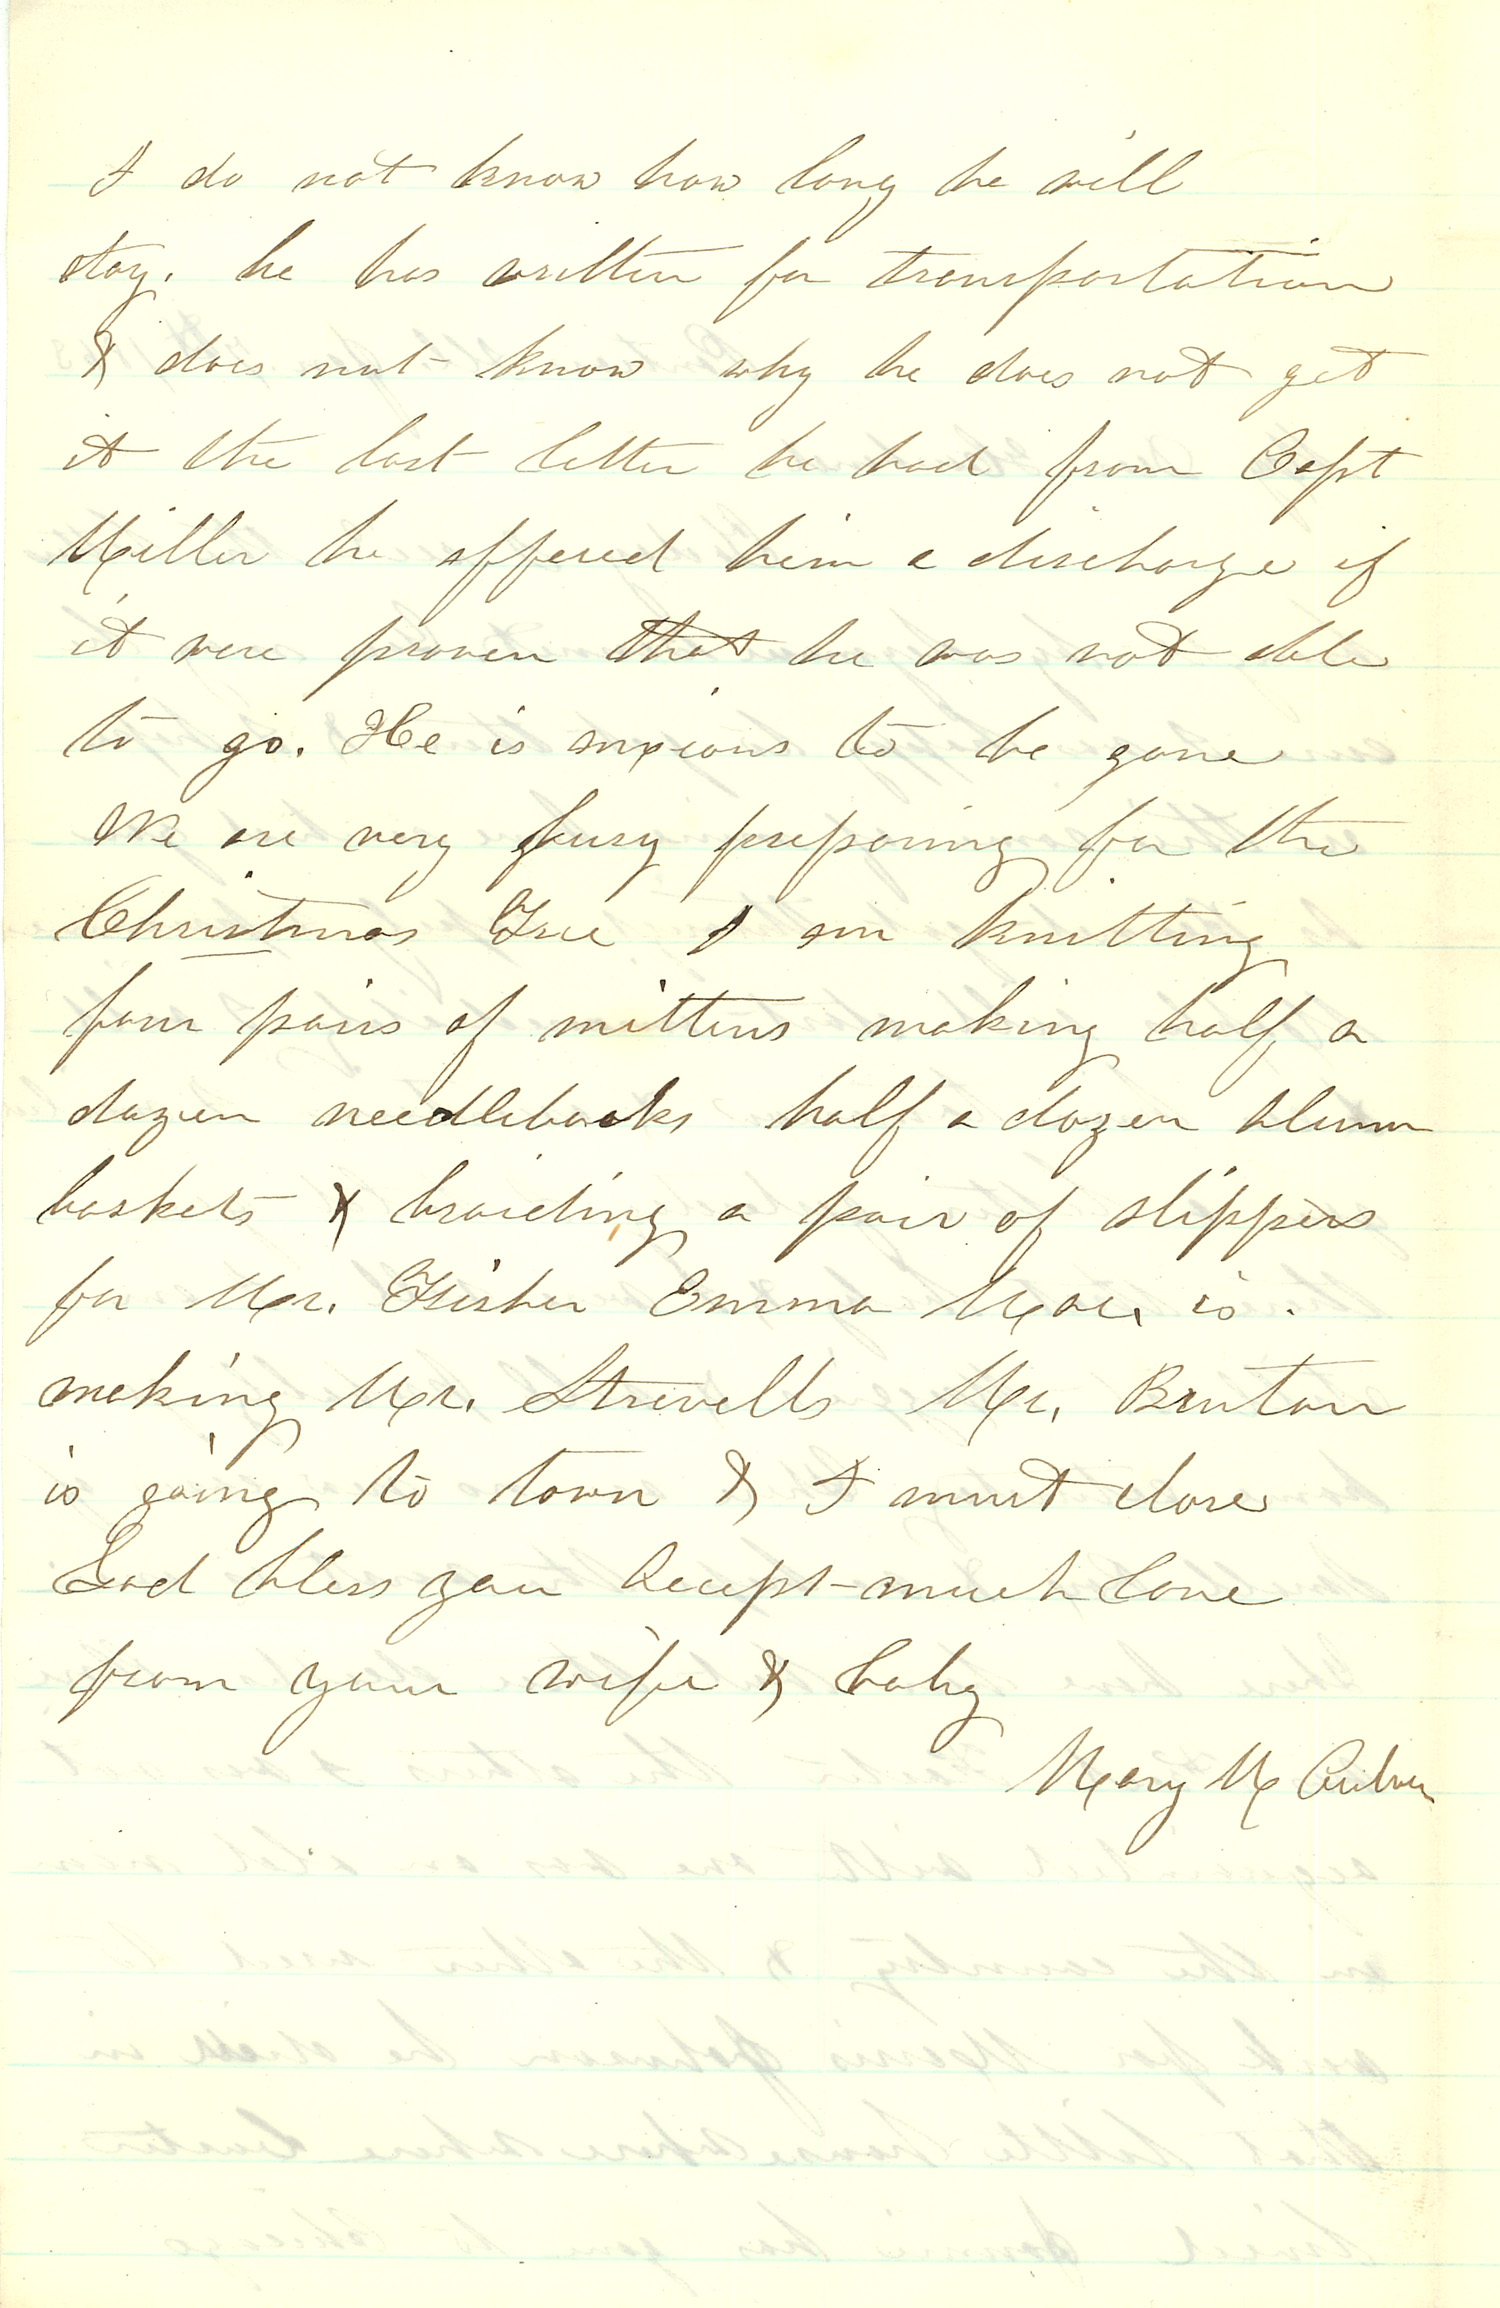 Joseph Culver Letter, January 7, 1863, Page 2